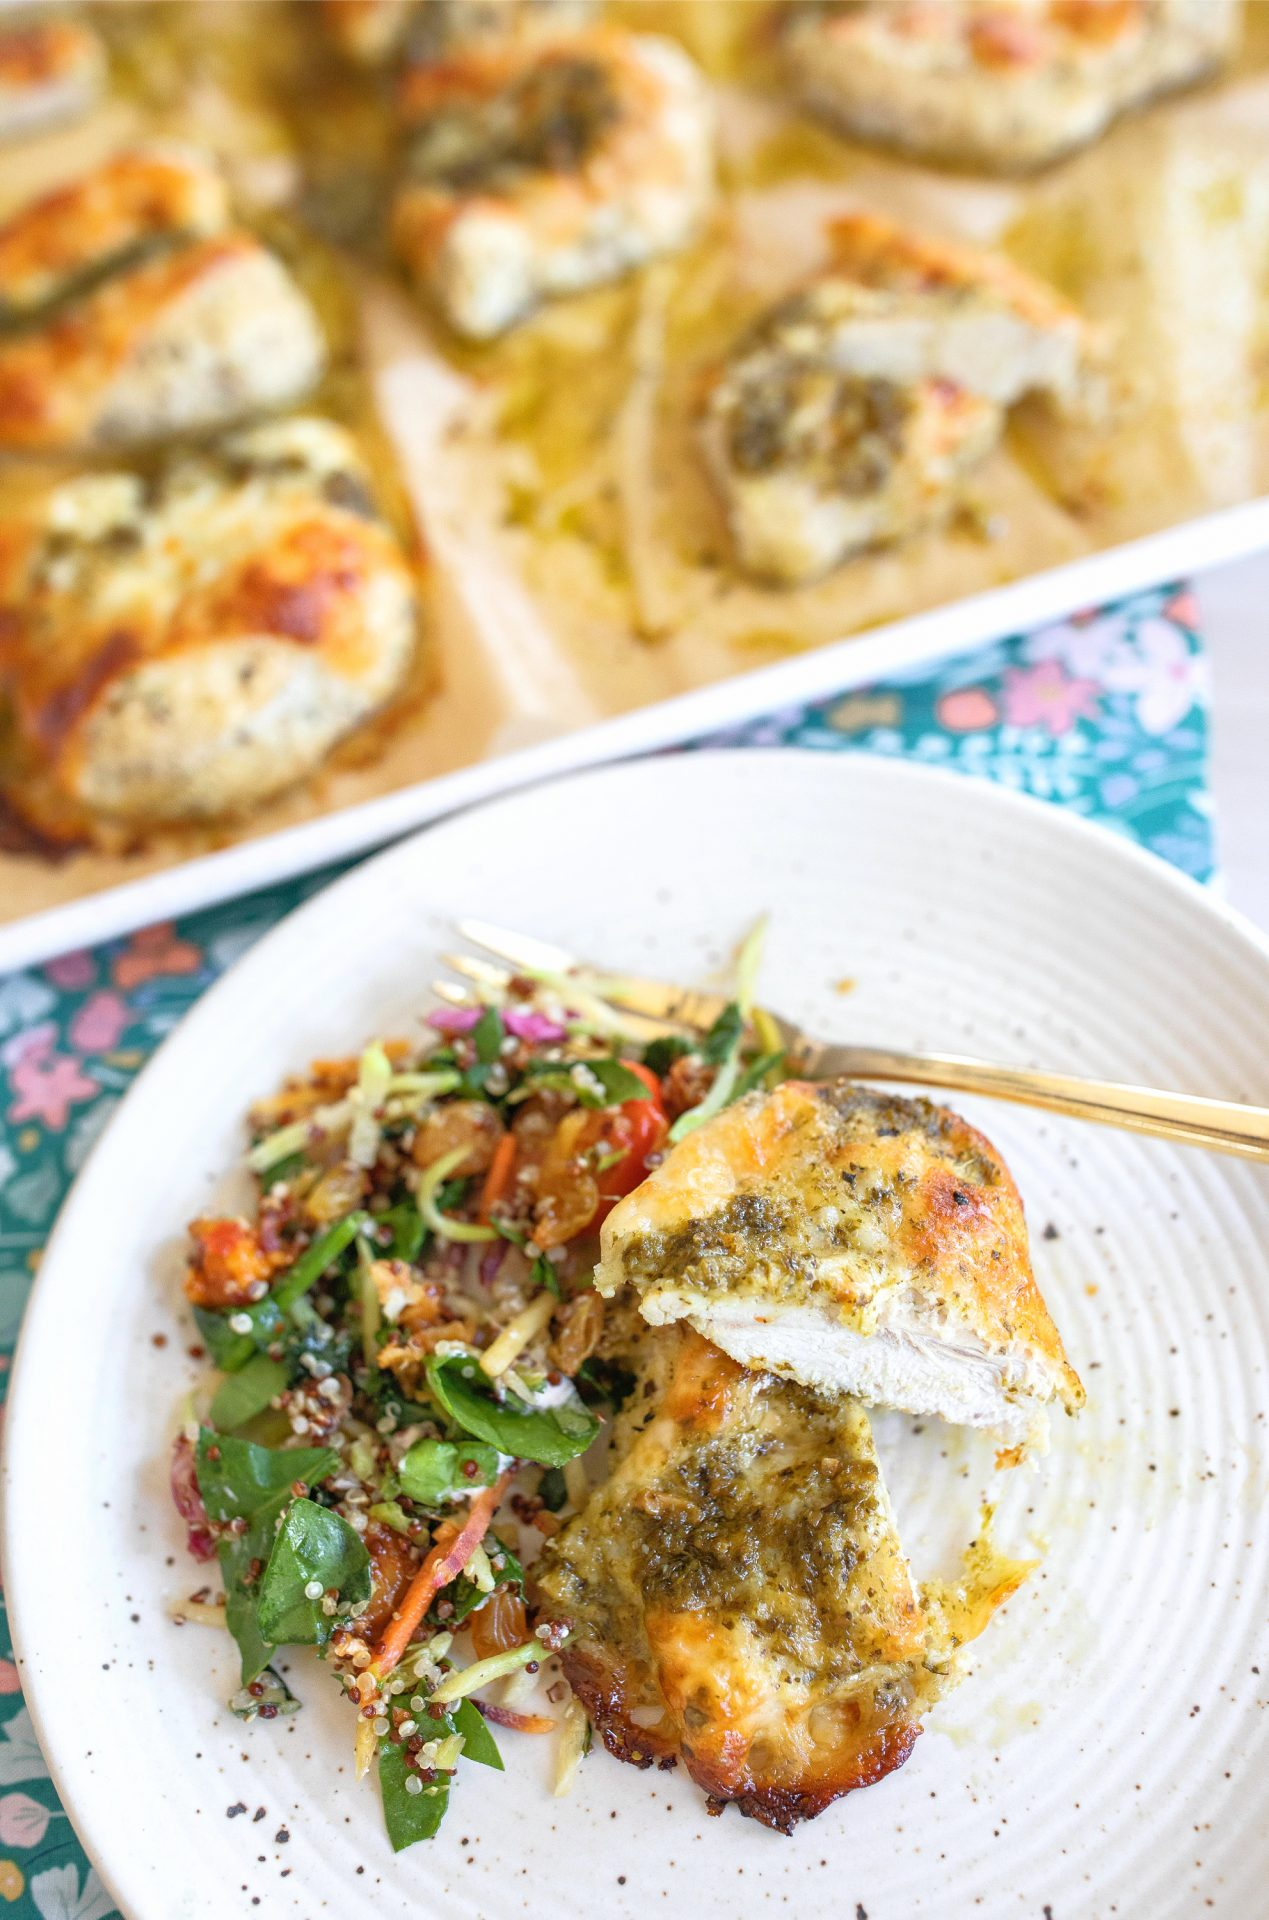 chicken, pesto, low carb, almond flour, breaded, dinner, gluten-free, baked chicken, low carb, keto, chicken parmesan, chicken pesto, roasted, easy dinner recipe